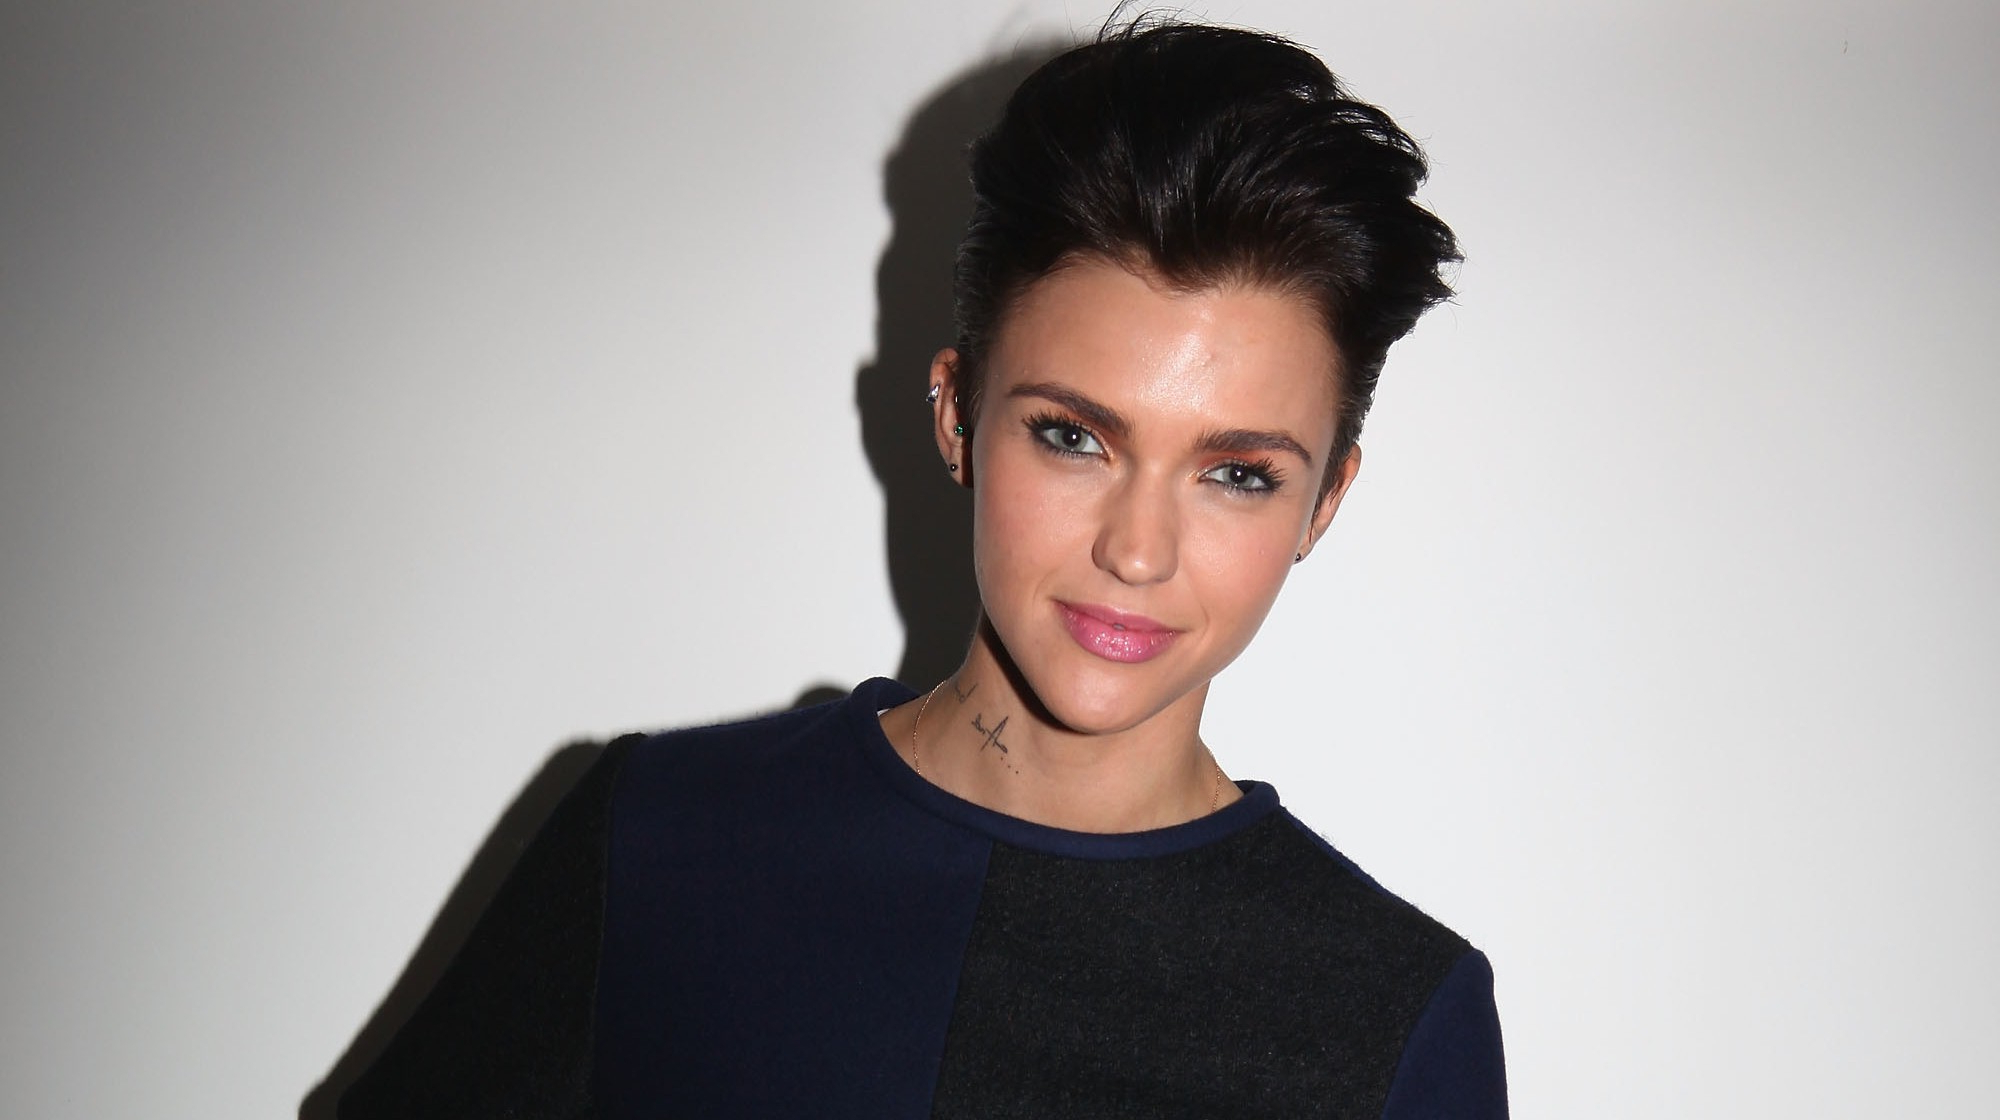 Ruby Rose In Short Hair Style Pics | Hd Wallpapers With Ruby Rose Short Hairstyles (View 3 of 25)